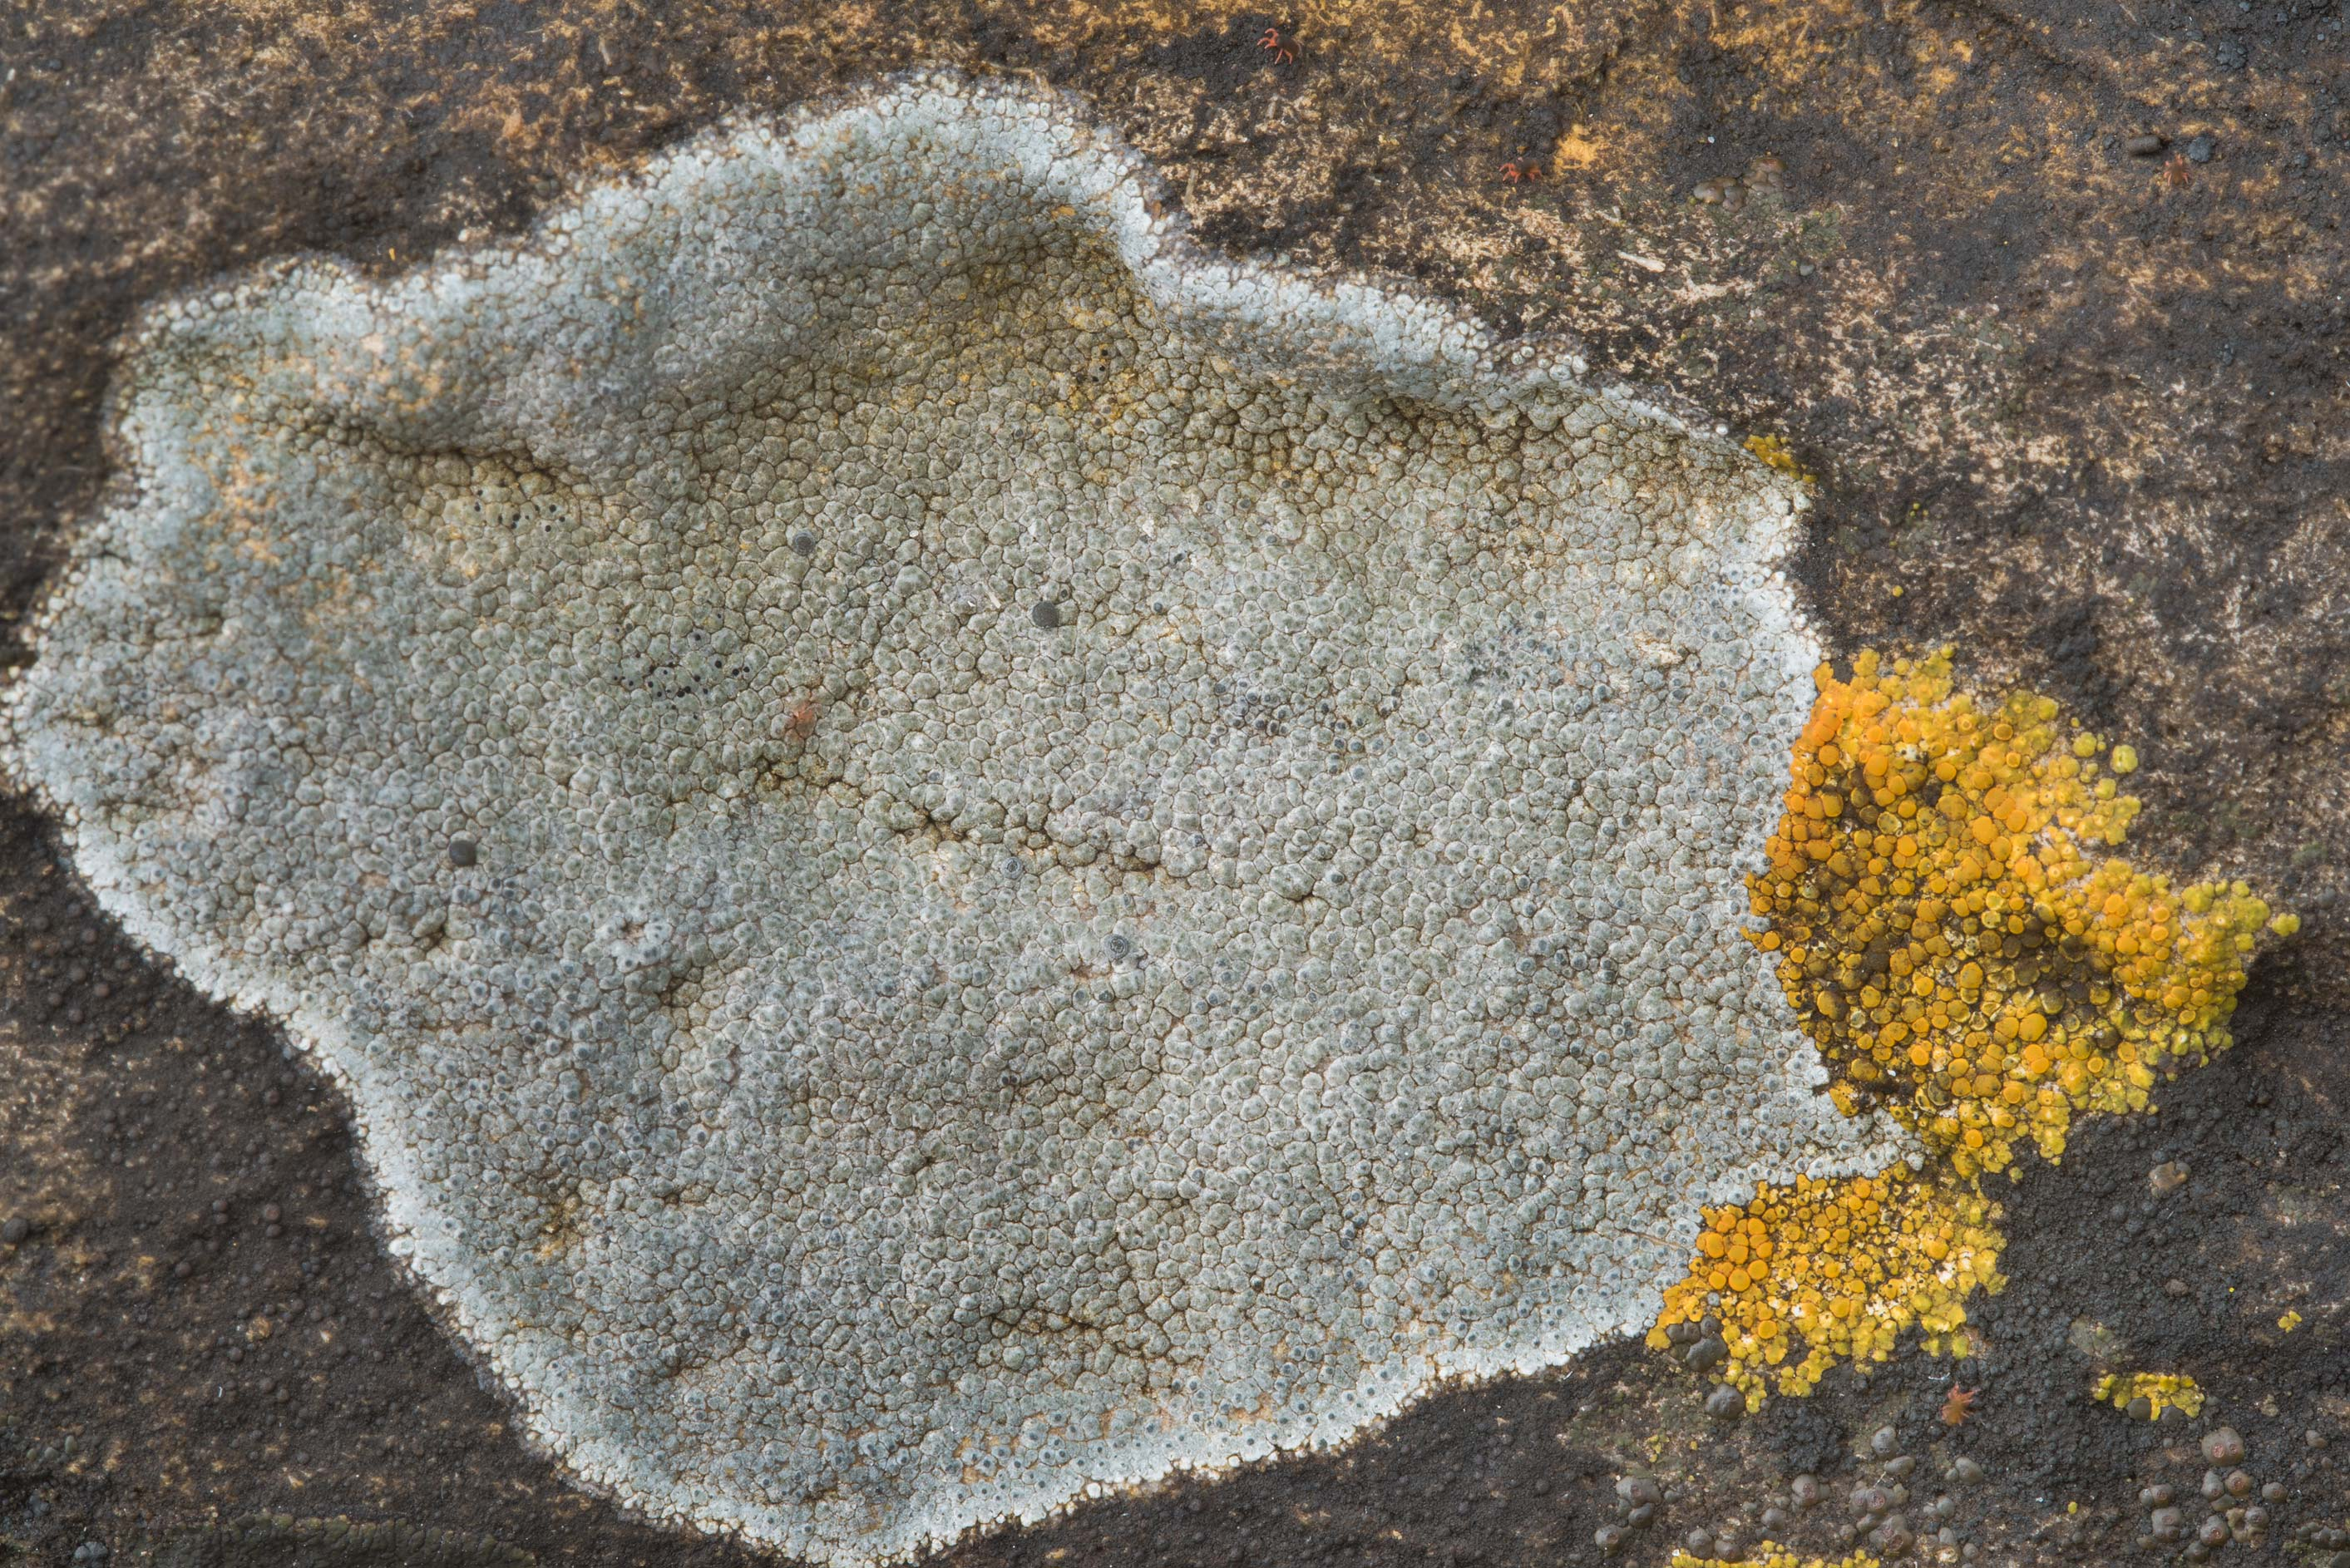 Grey crustose lichen on limestone in Pedernales Falls State Park. Johnson City, Texas